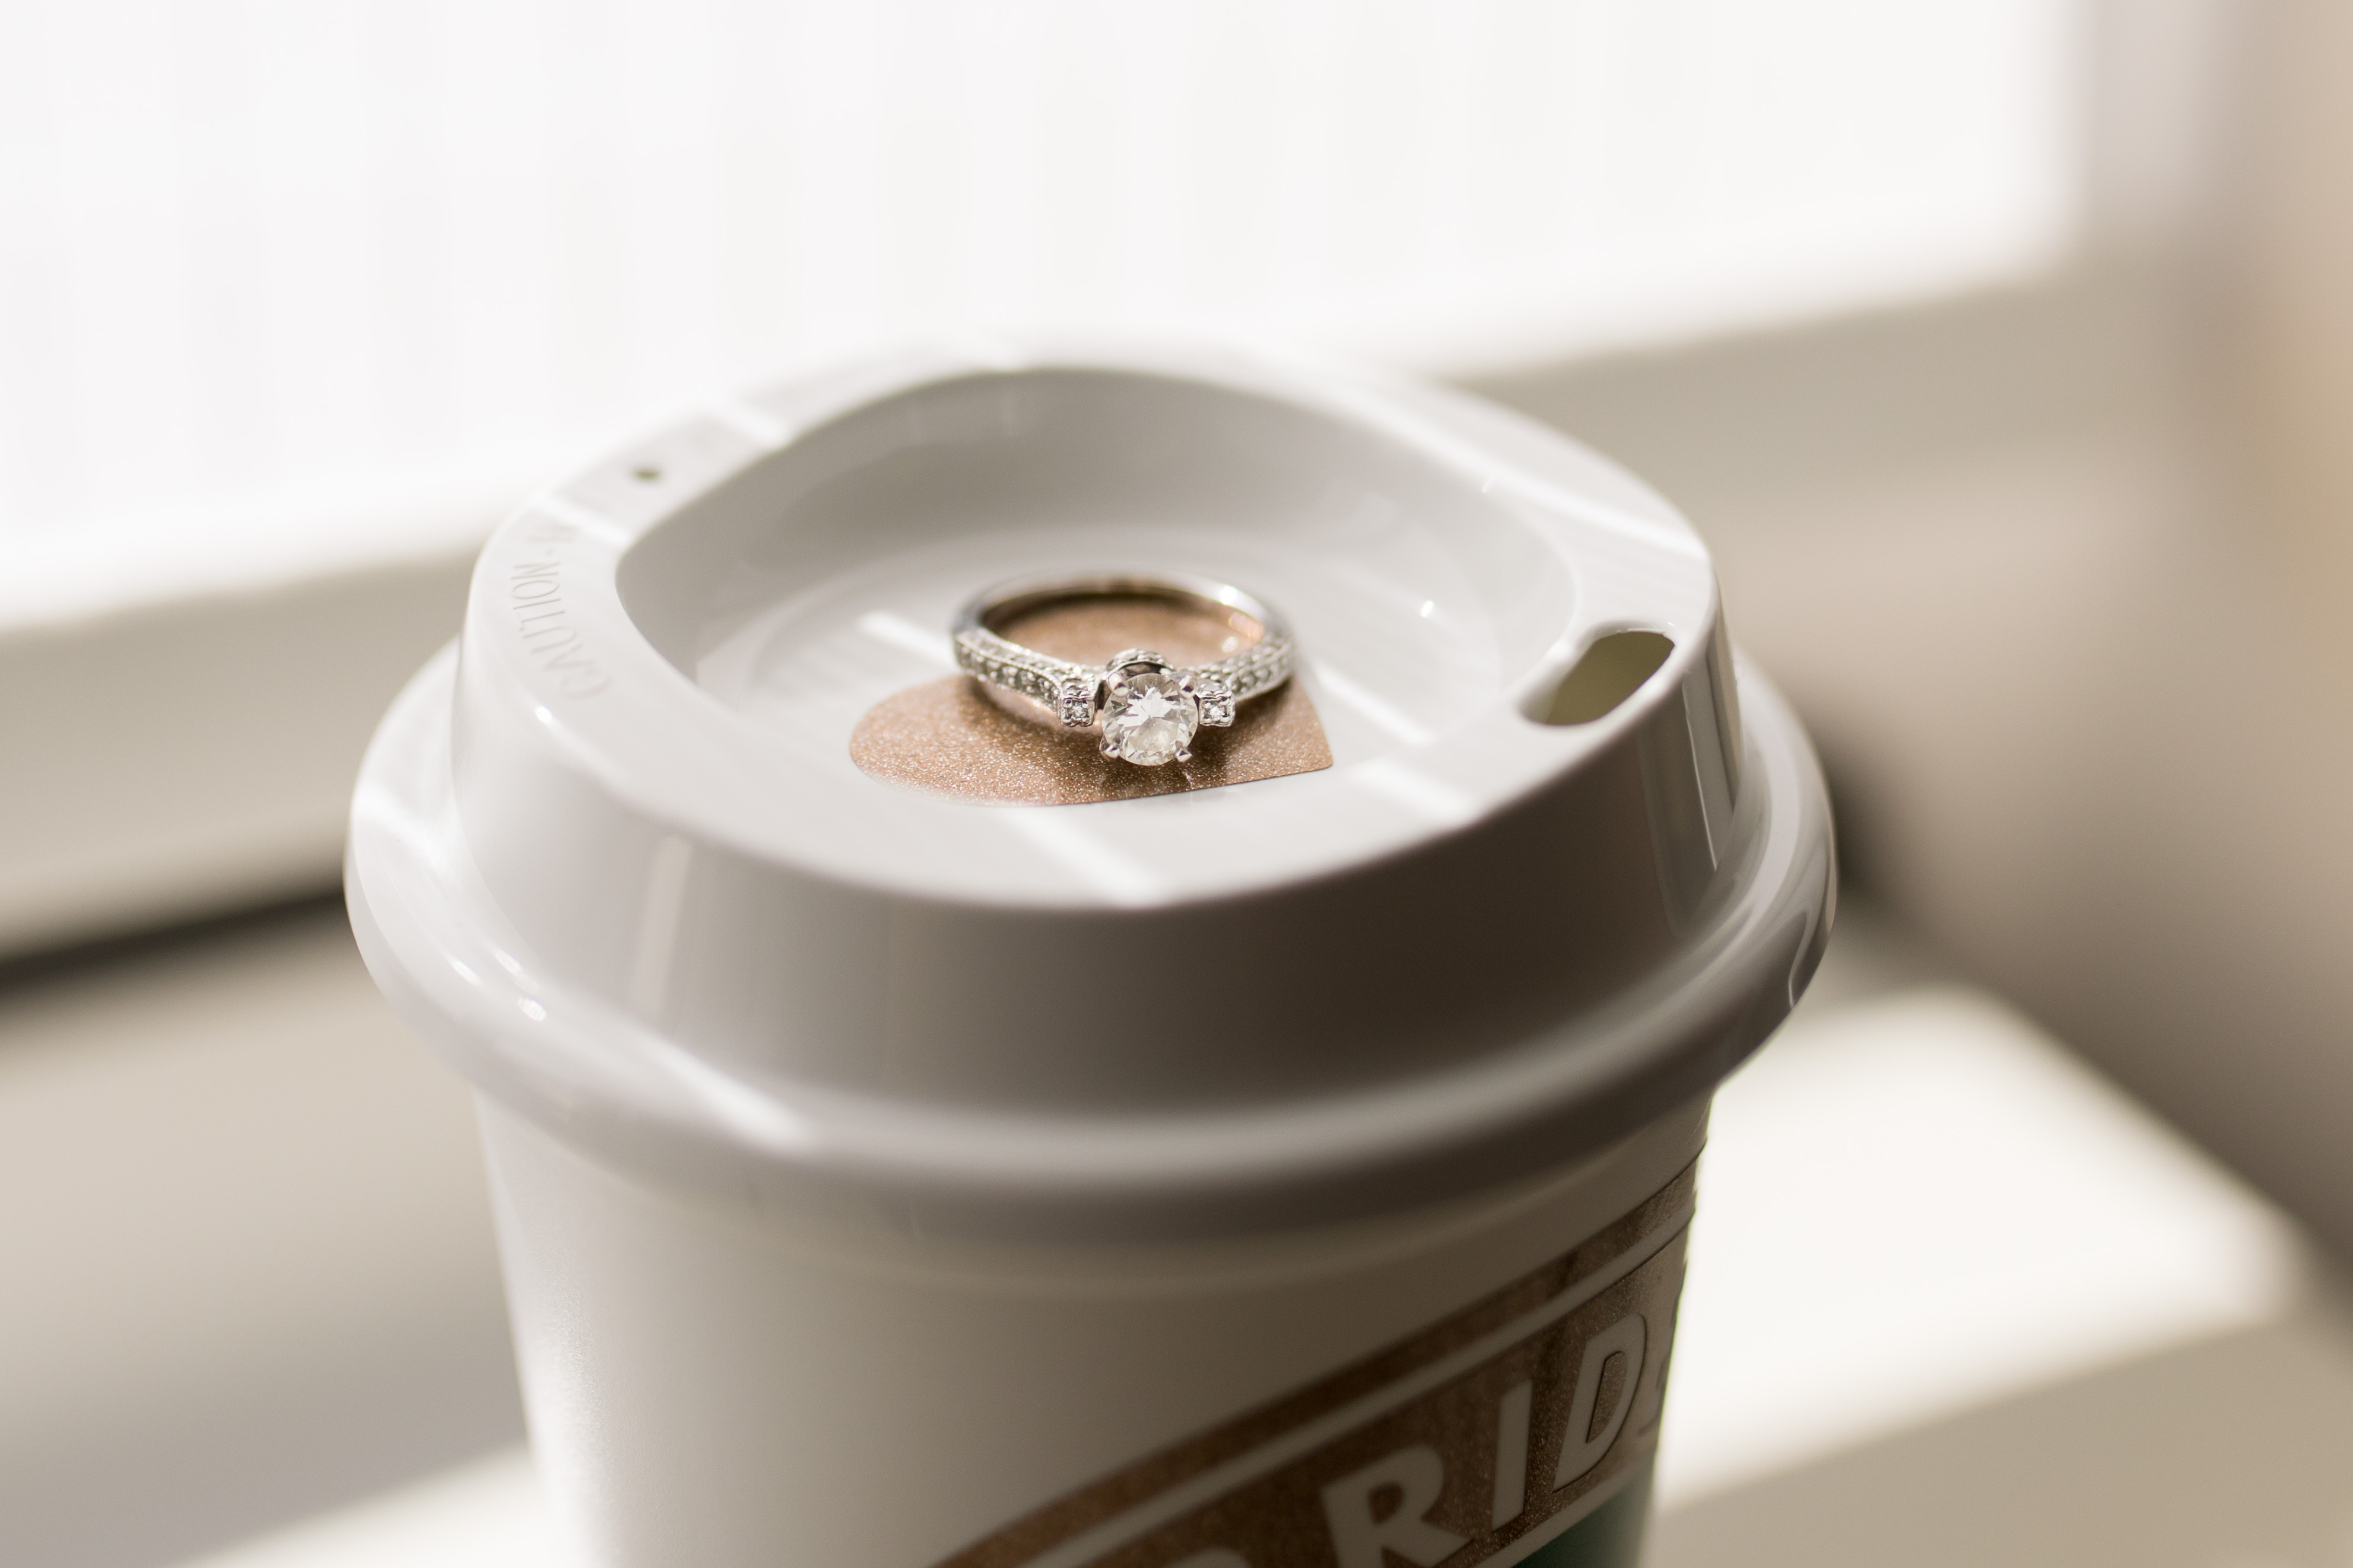 ring from Palmer's Jewelry on bride's coffee cup in Kokomo Indiana